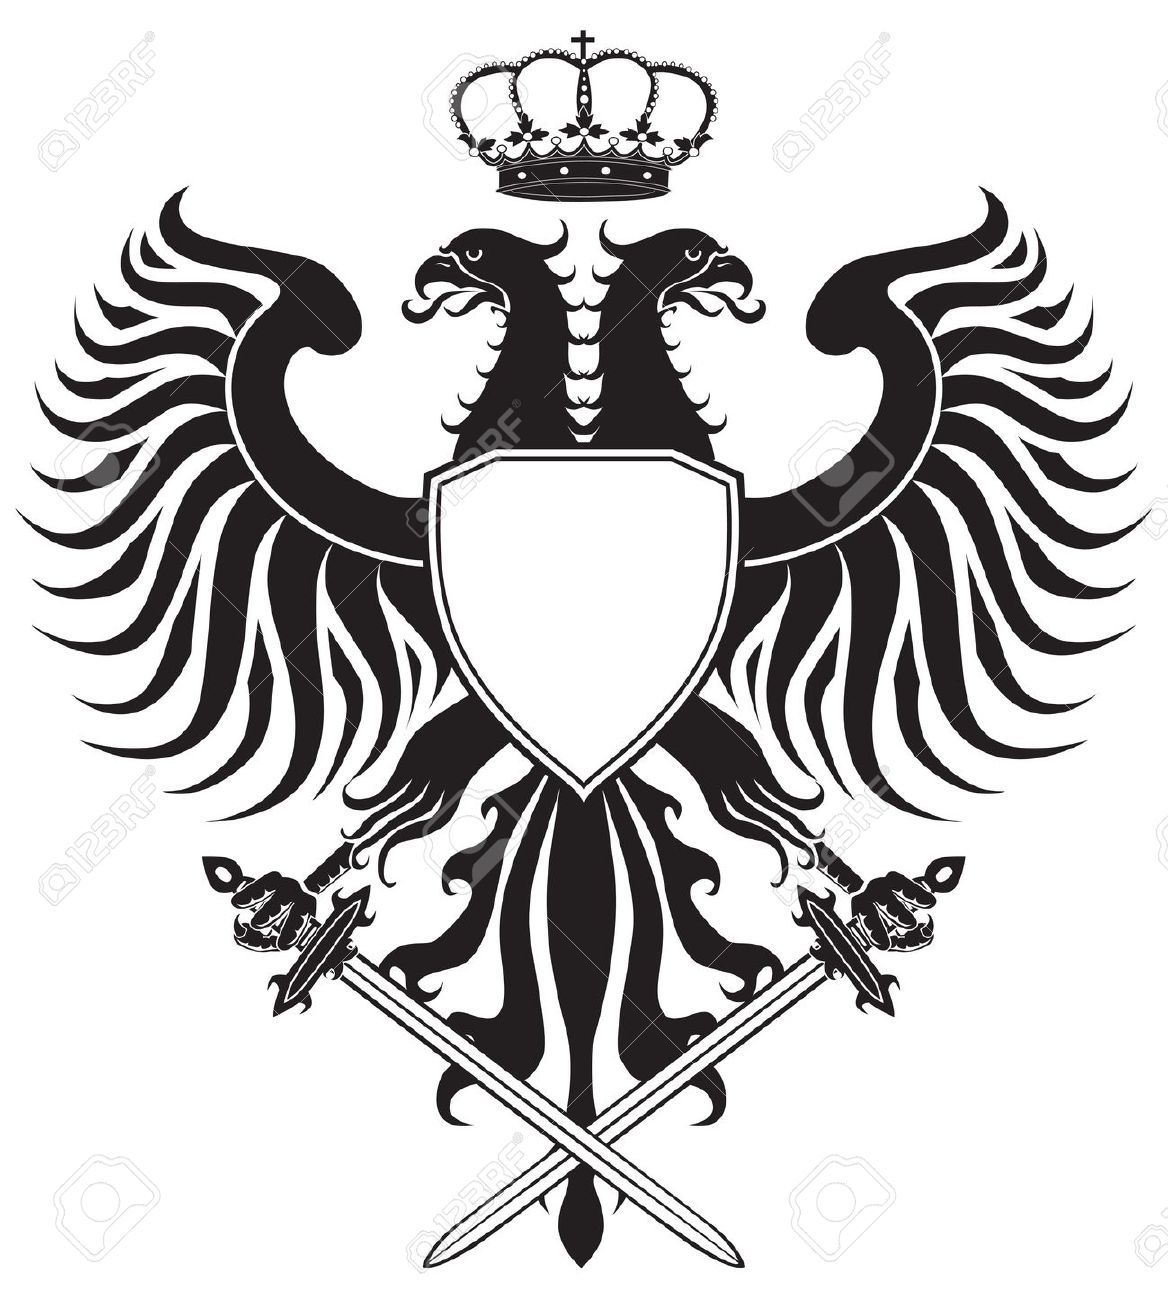 crests: Double-headed eagle with crown and swords